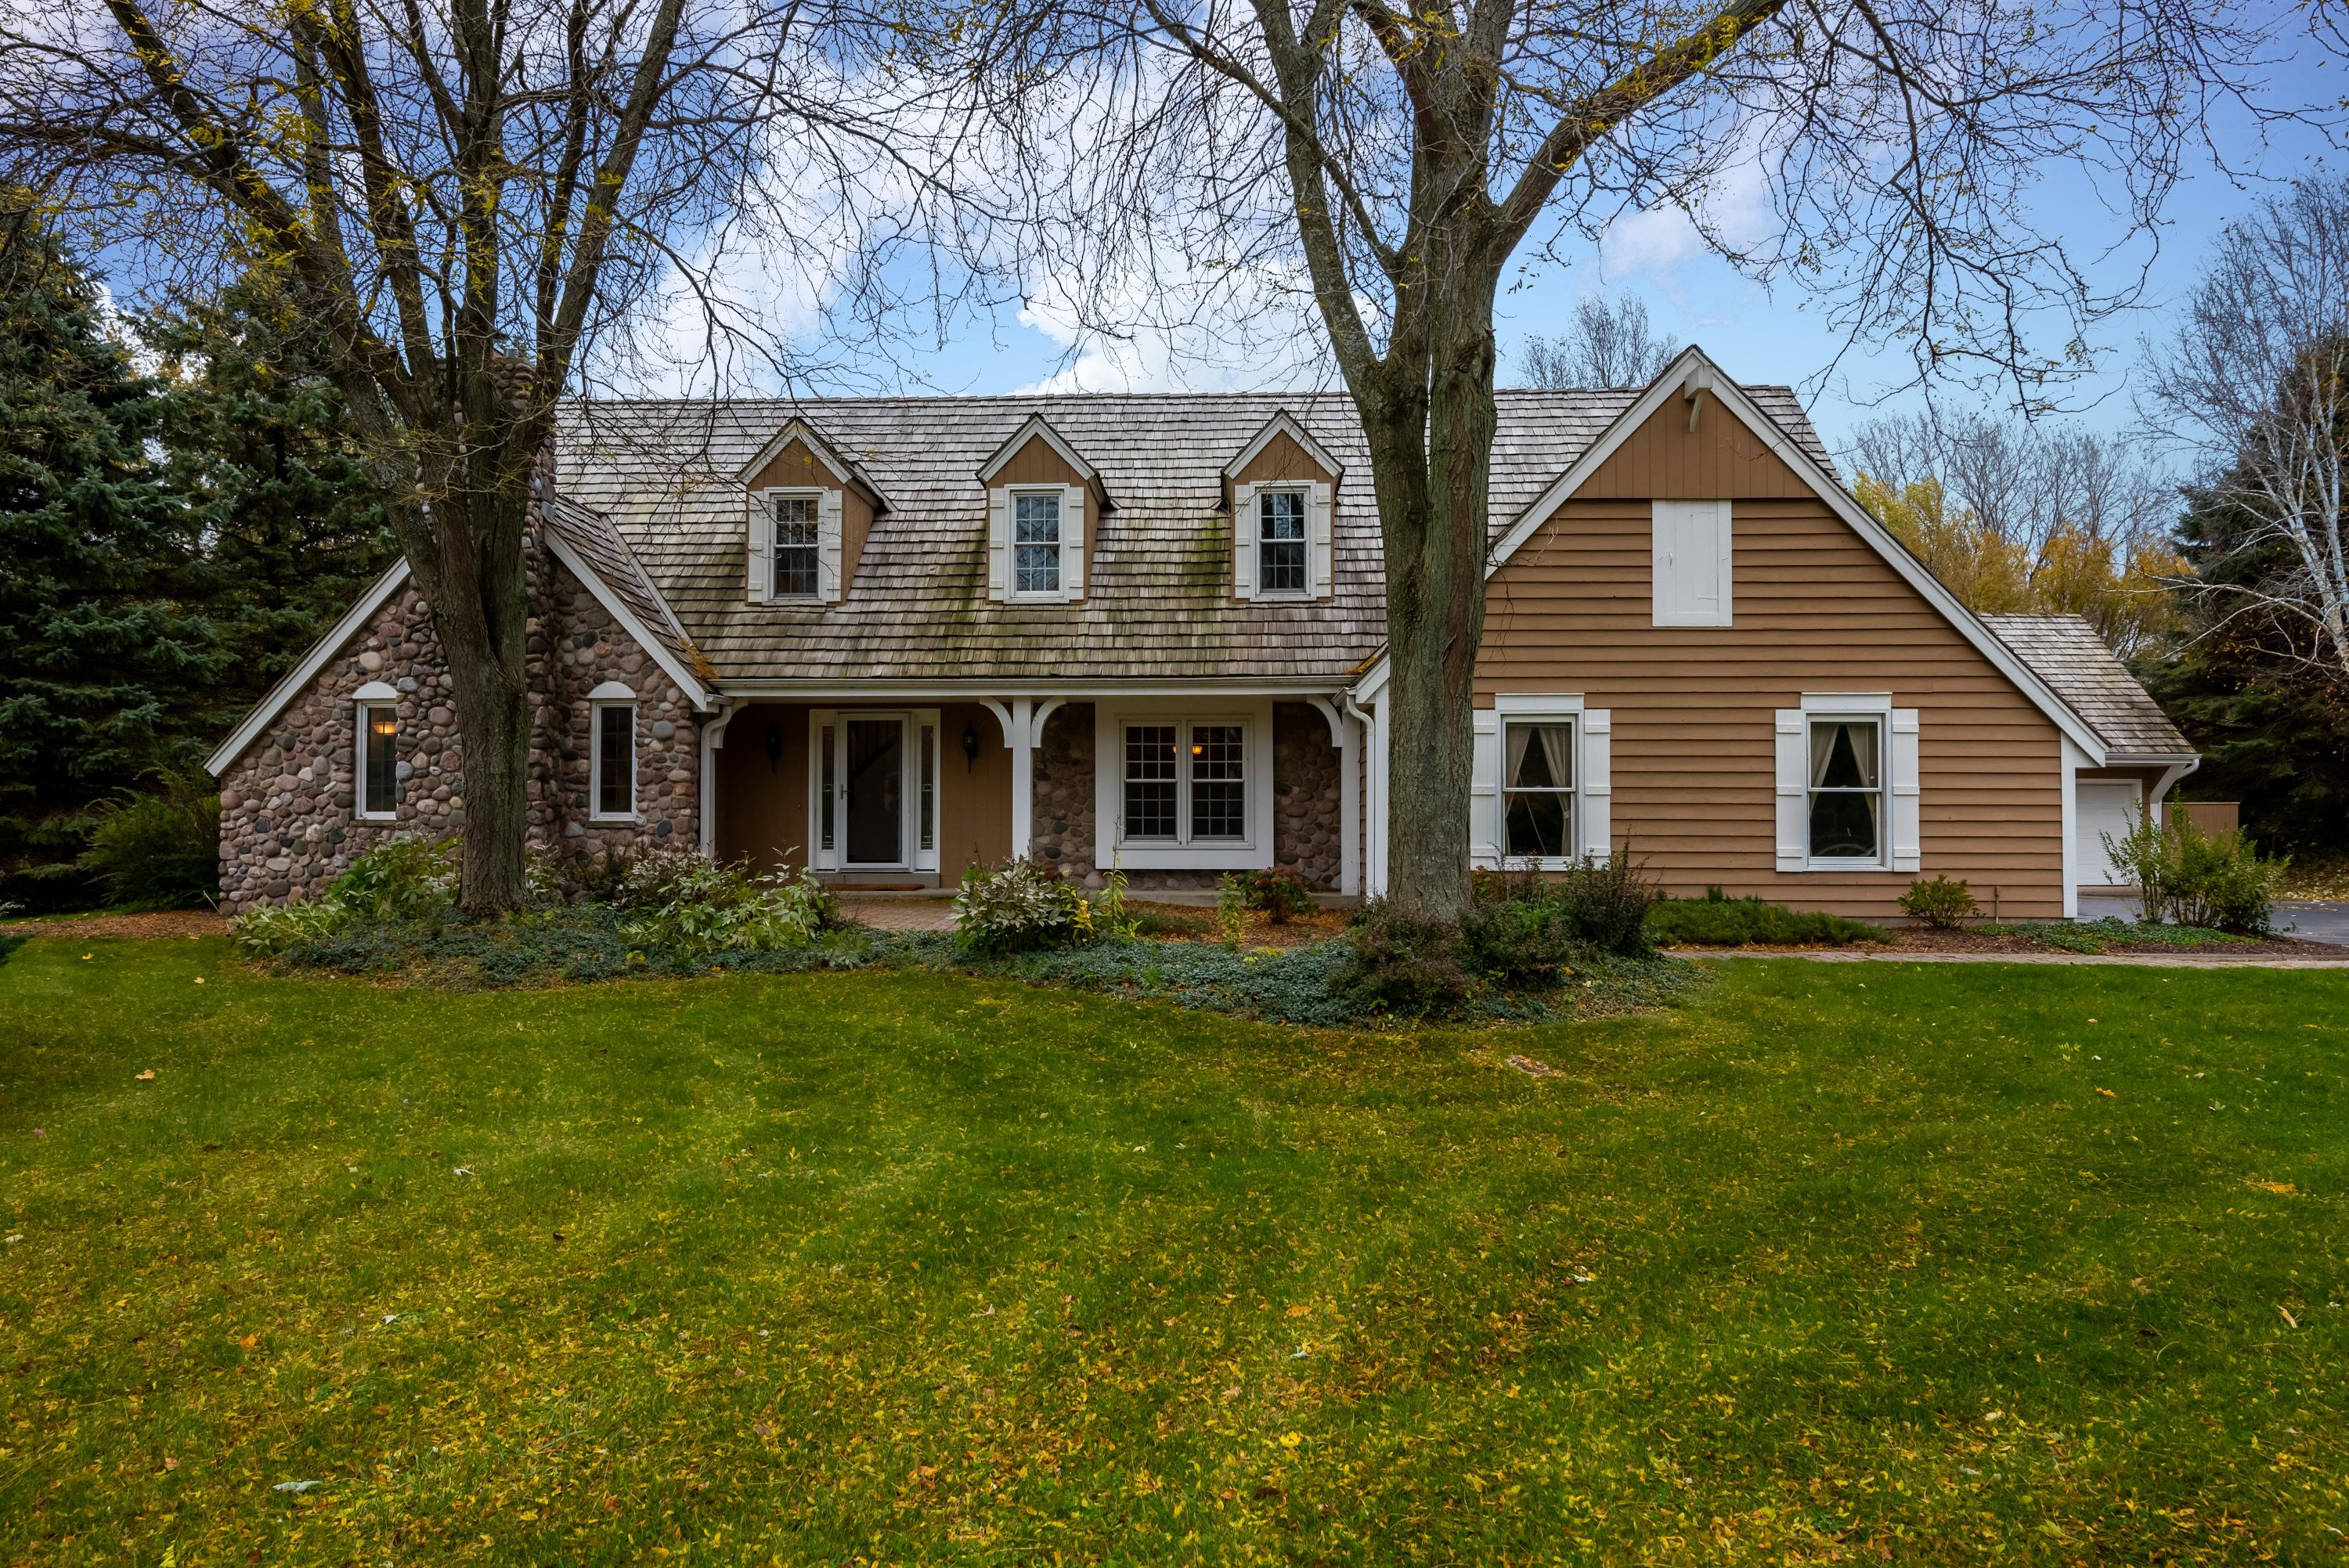 N7W29575 Thames Ct, Delafield, Wisconsin 53188, 4 Bedrooms Bedrooms, 11 Rooms Rooms,2 BathroomsBathrooms,Single-Family,For Sale,Thames Ct,1665246